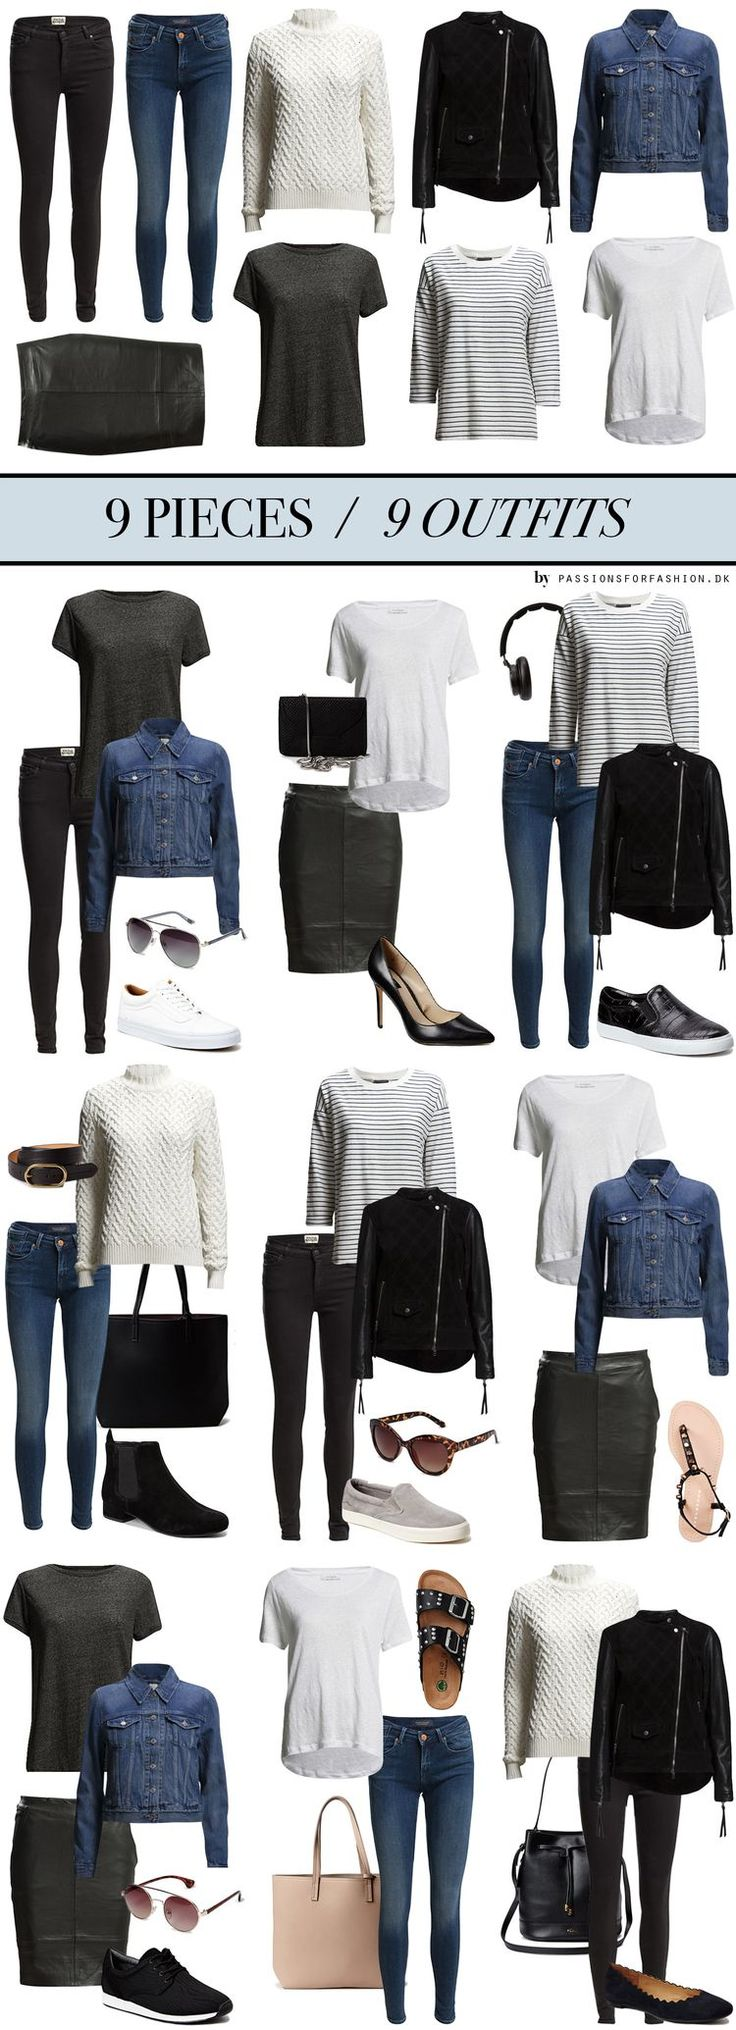 9 pieces 9 outfits